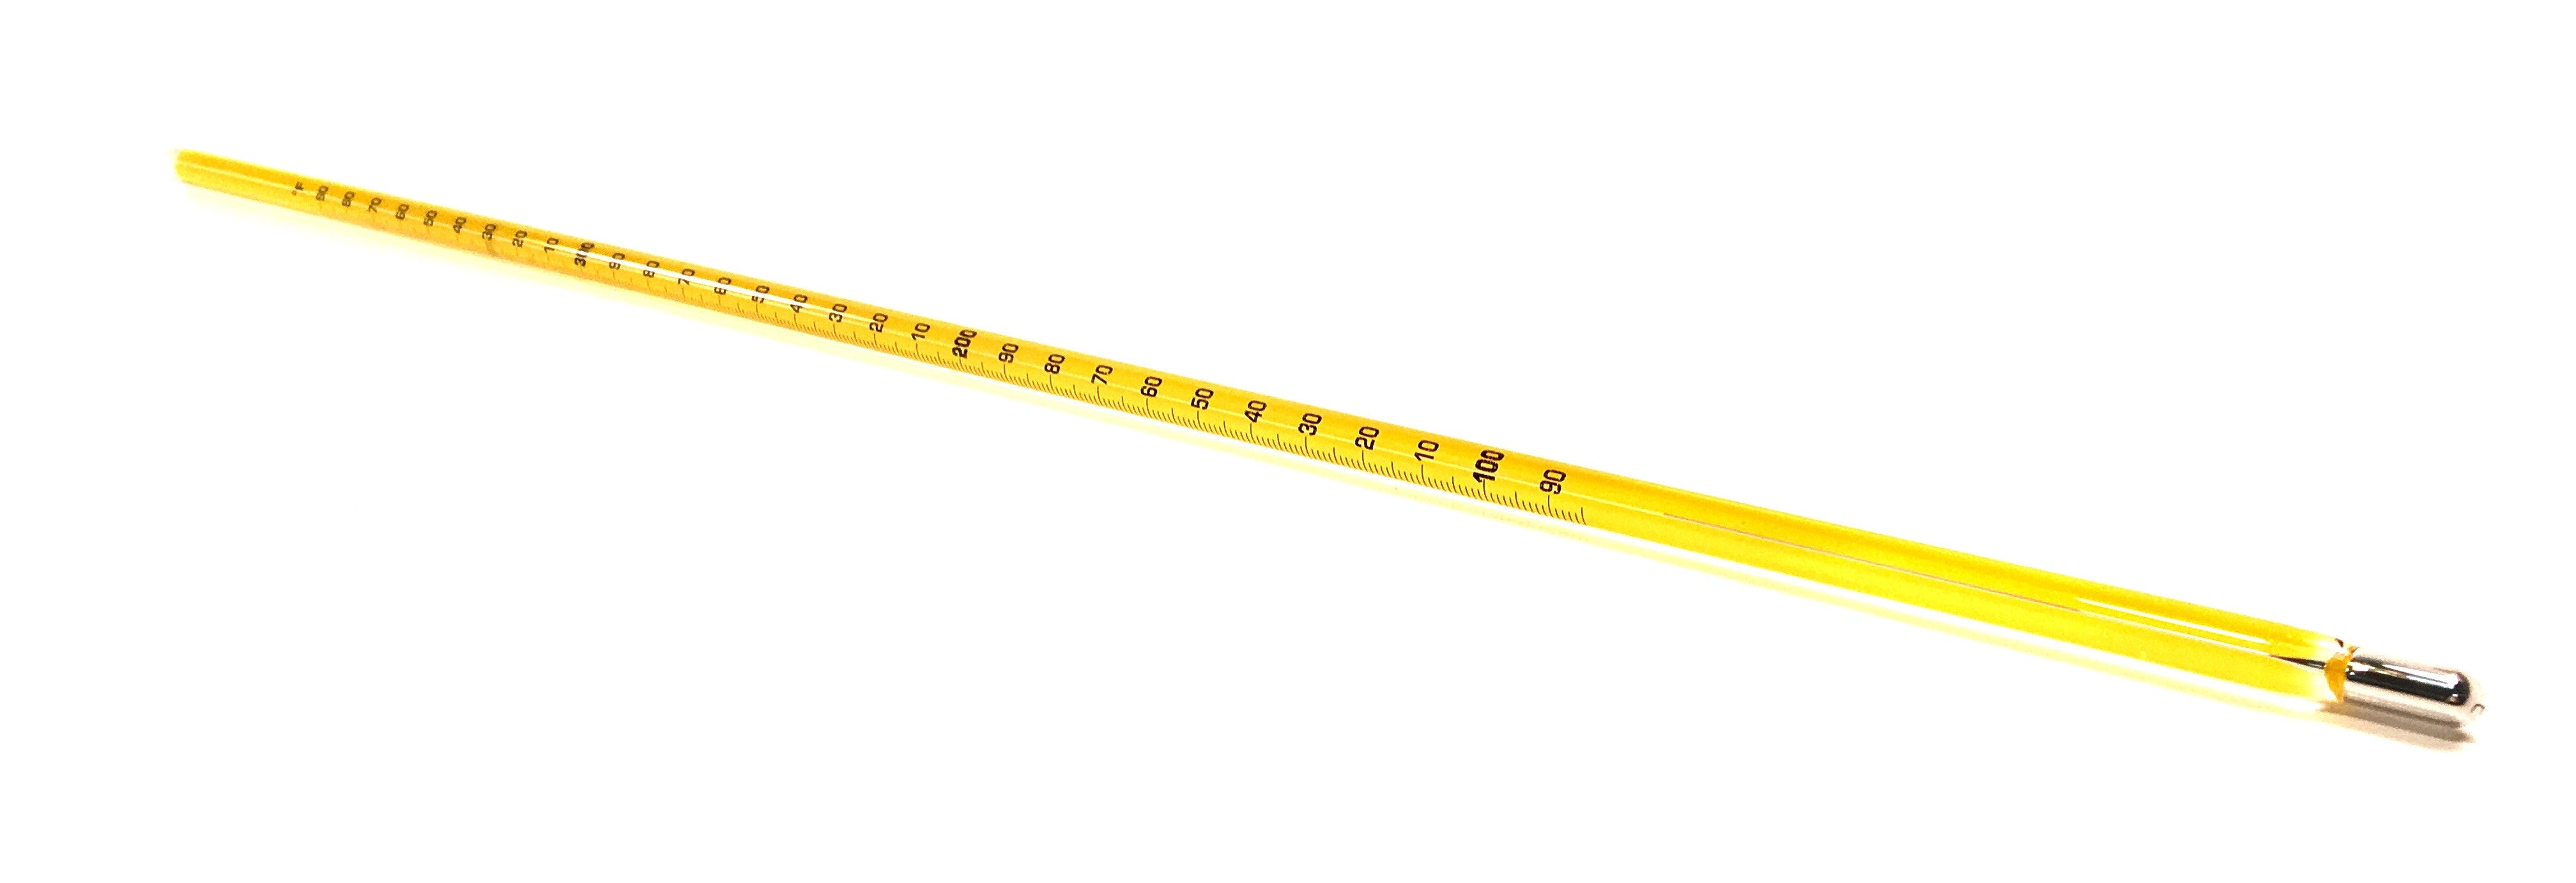 "Glass Mercury 15"" Thermometer, 30 - 400°F x 1.0° - Available With or Without NIST Certificate"